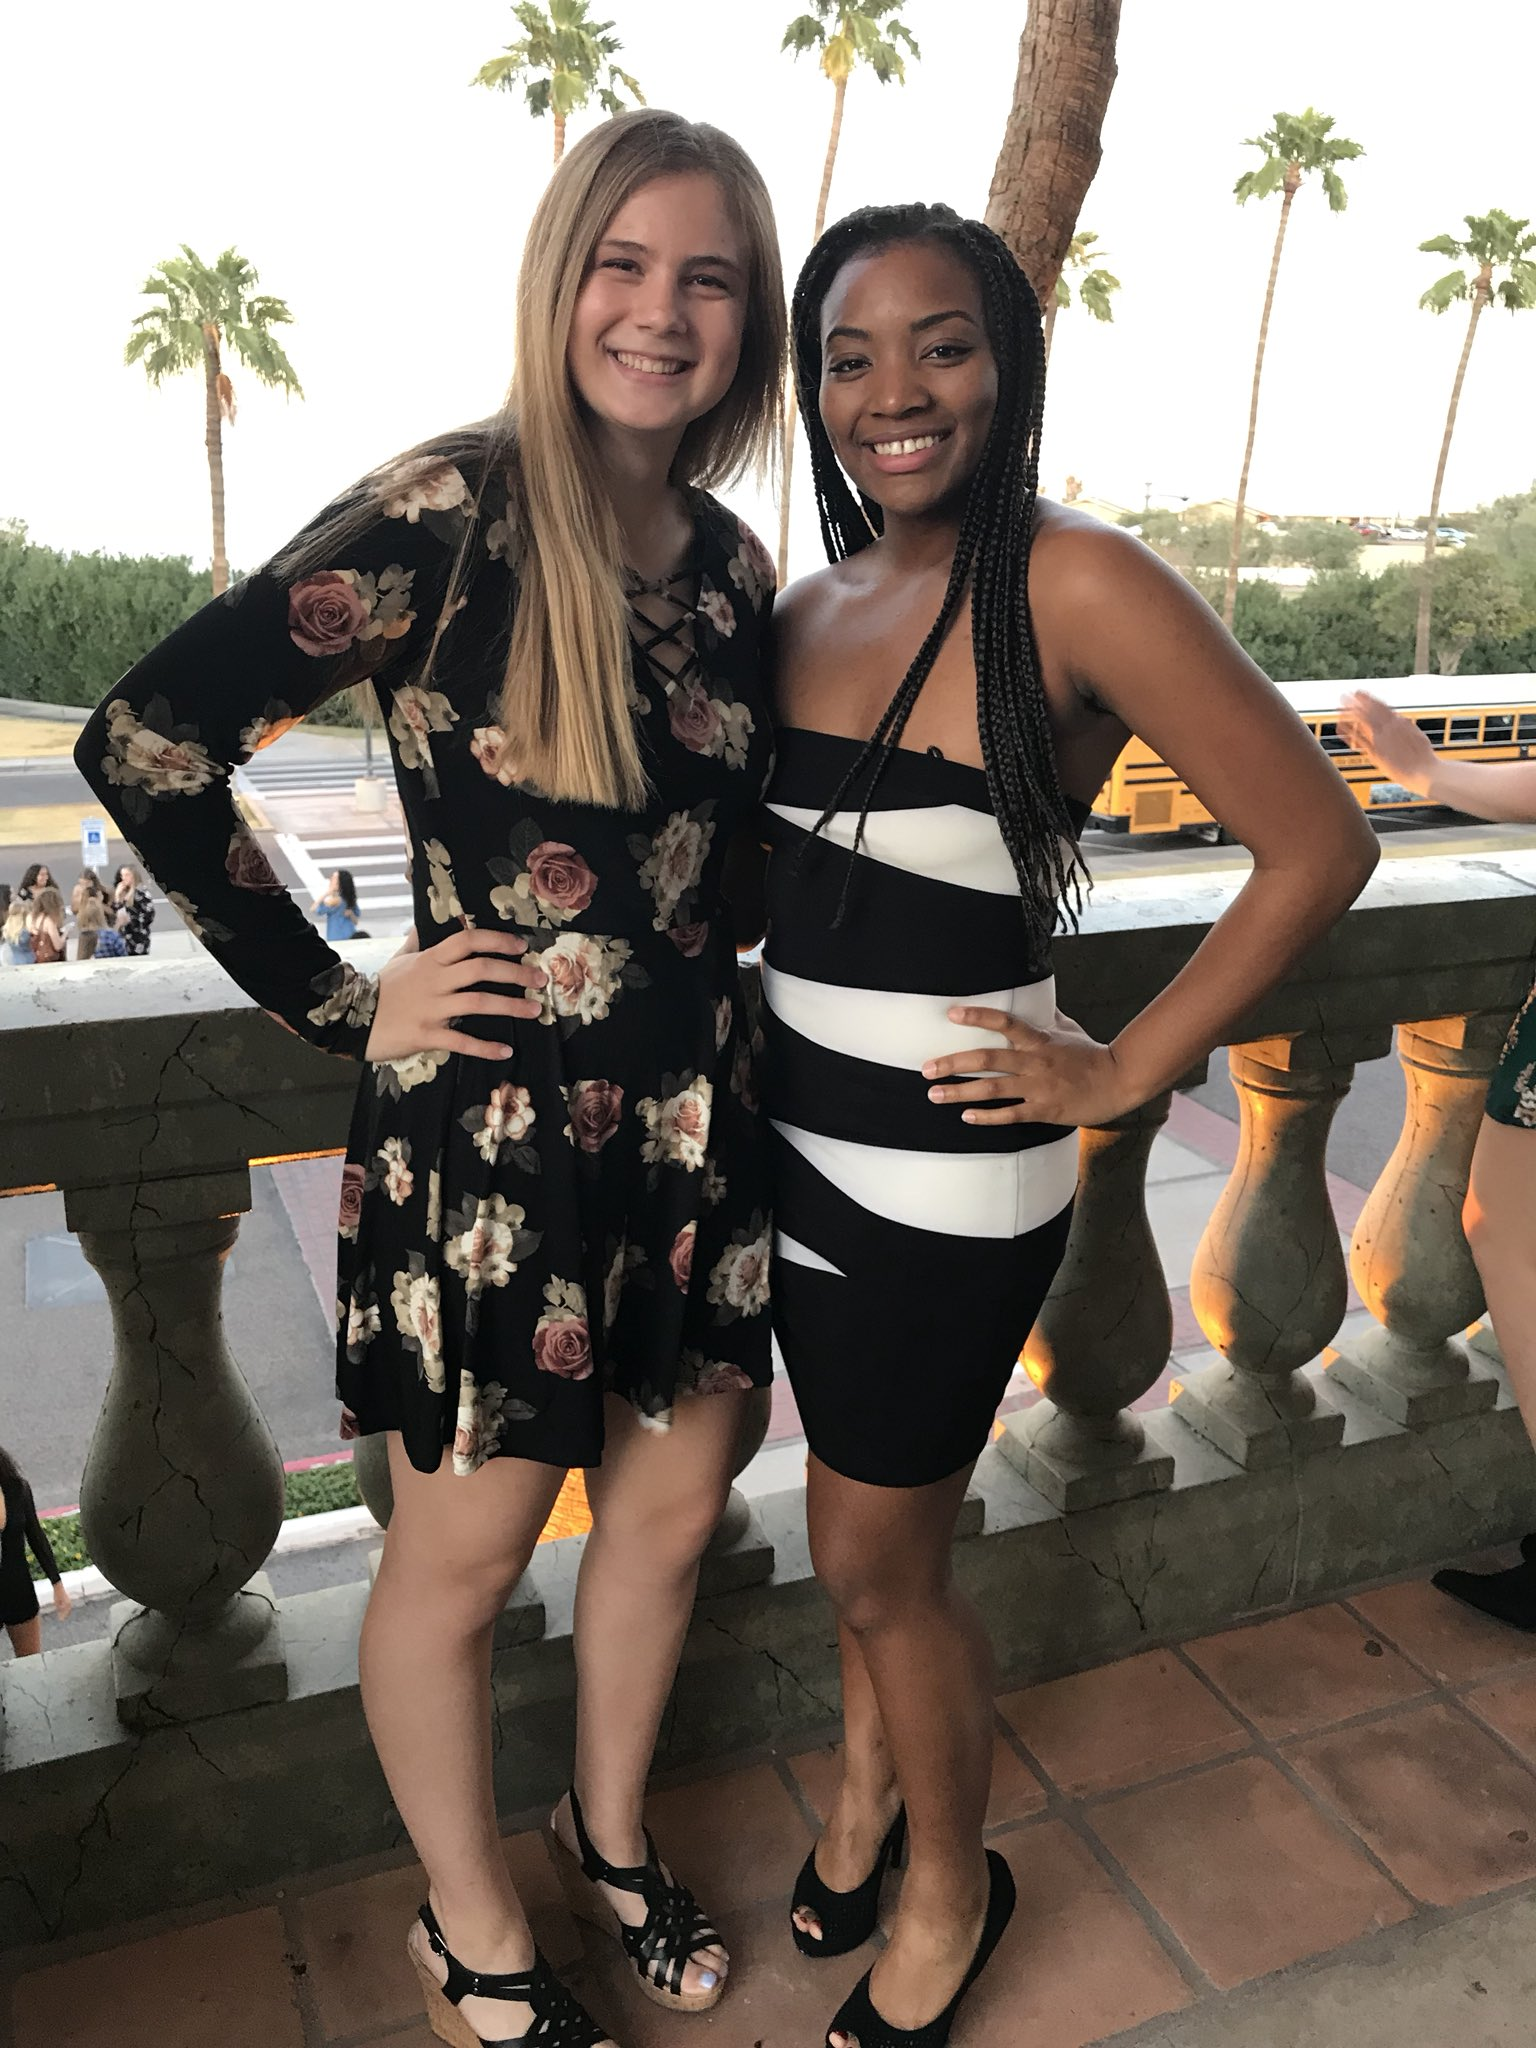 Happy birthday ashanti!! i love you and i hope you have an amazing day